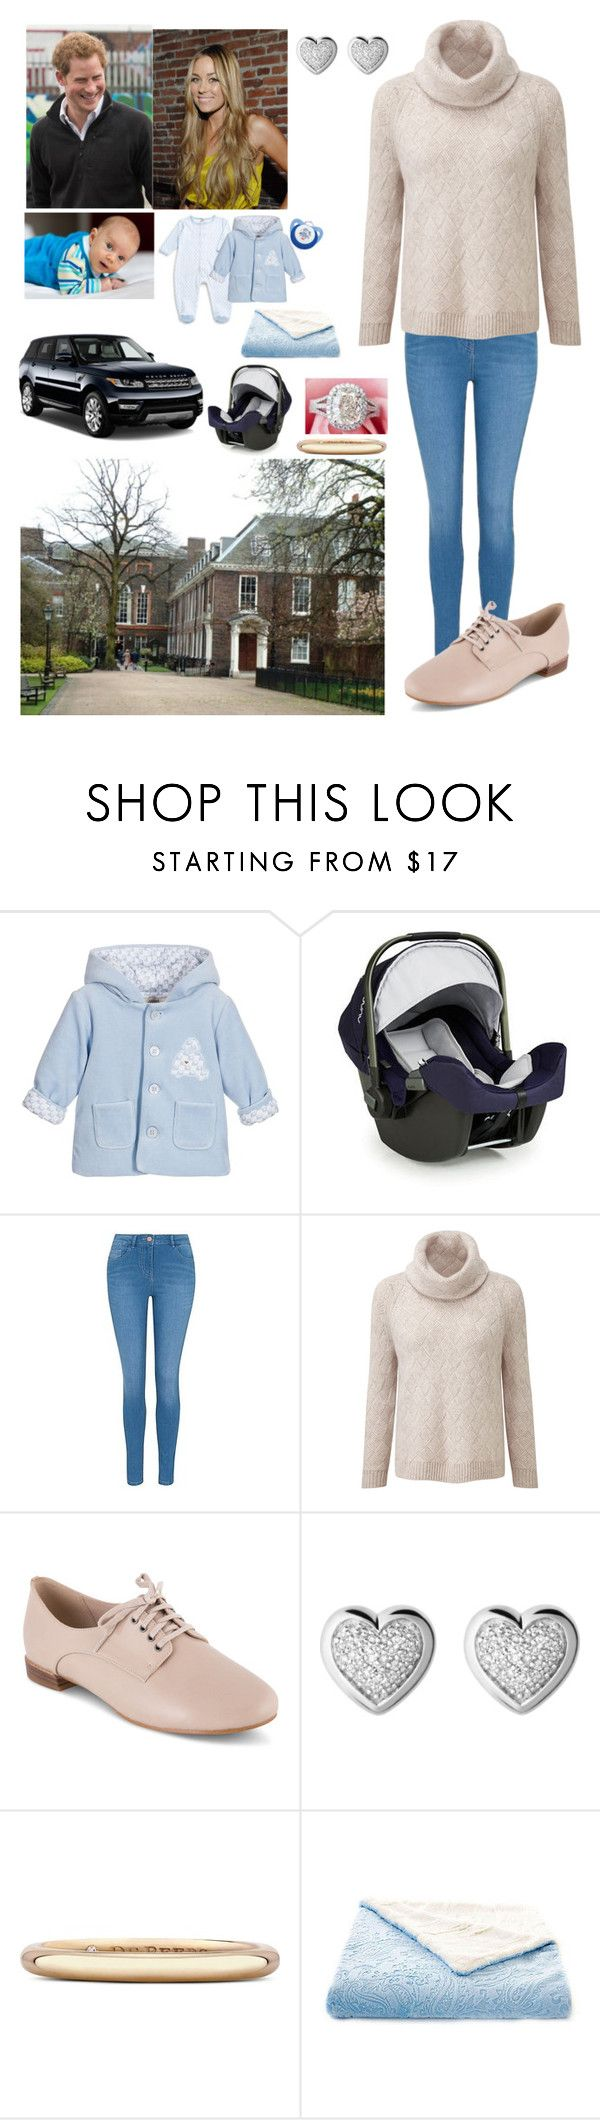 """""""Family leaving from Buckingham palace and Go back home to Kensington palace"""" by royal-431 ❤ liked on Polyvore featuring Lord & Taylor, Giorgio Armani, Nuna, George, Clarks, Links of London, De Beers and Disney"""